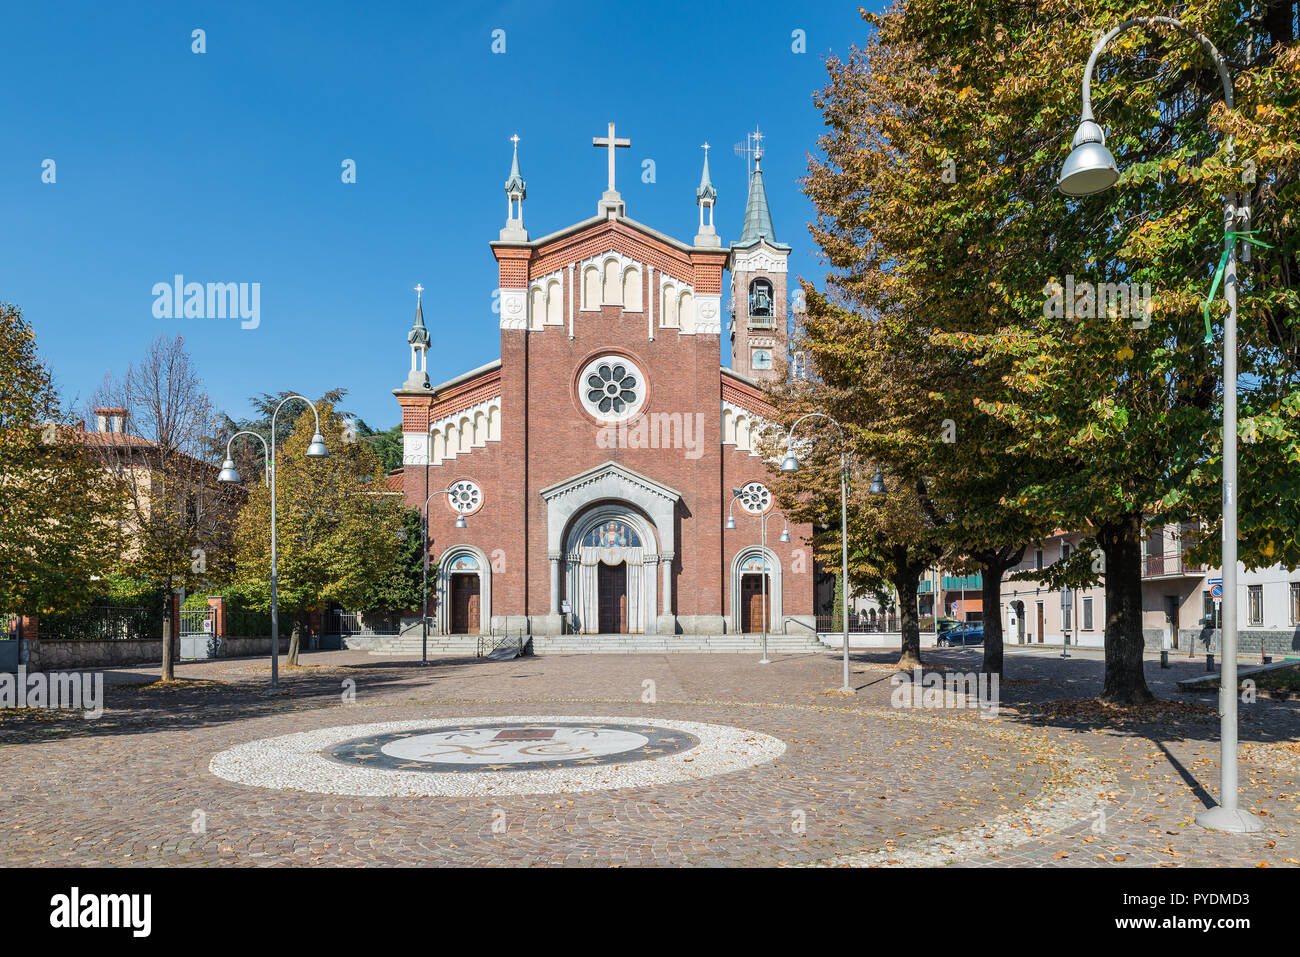 Rescaldina, province of Milan, Italy. Church saints Bernard and Joseph located in the historical center of the city - Stock Image